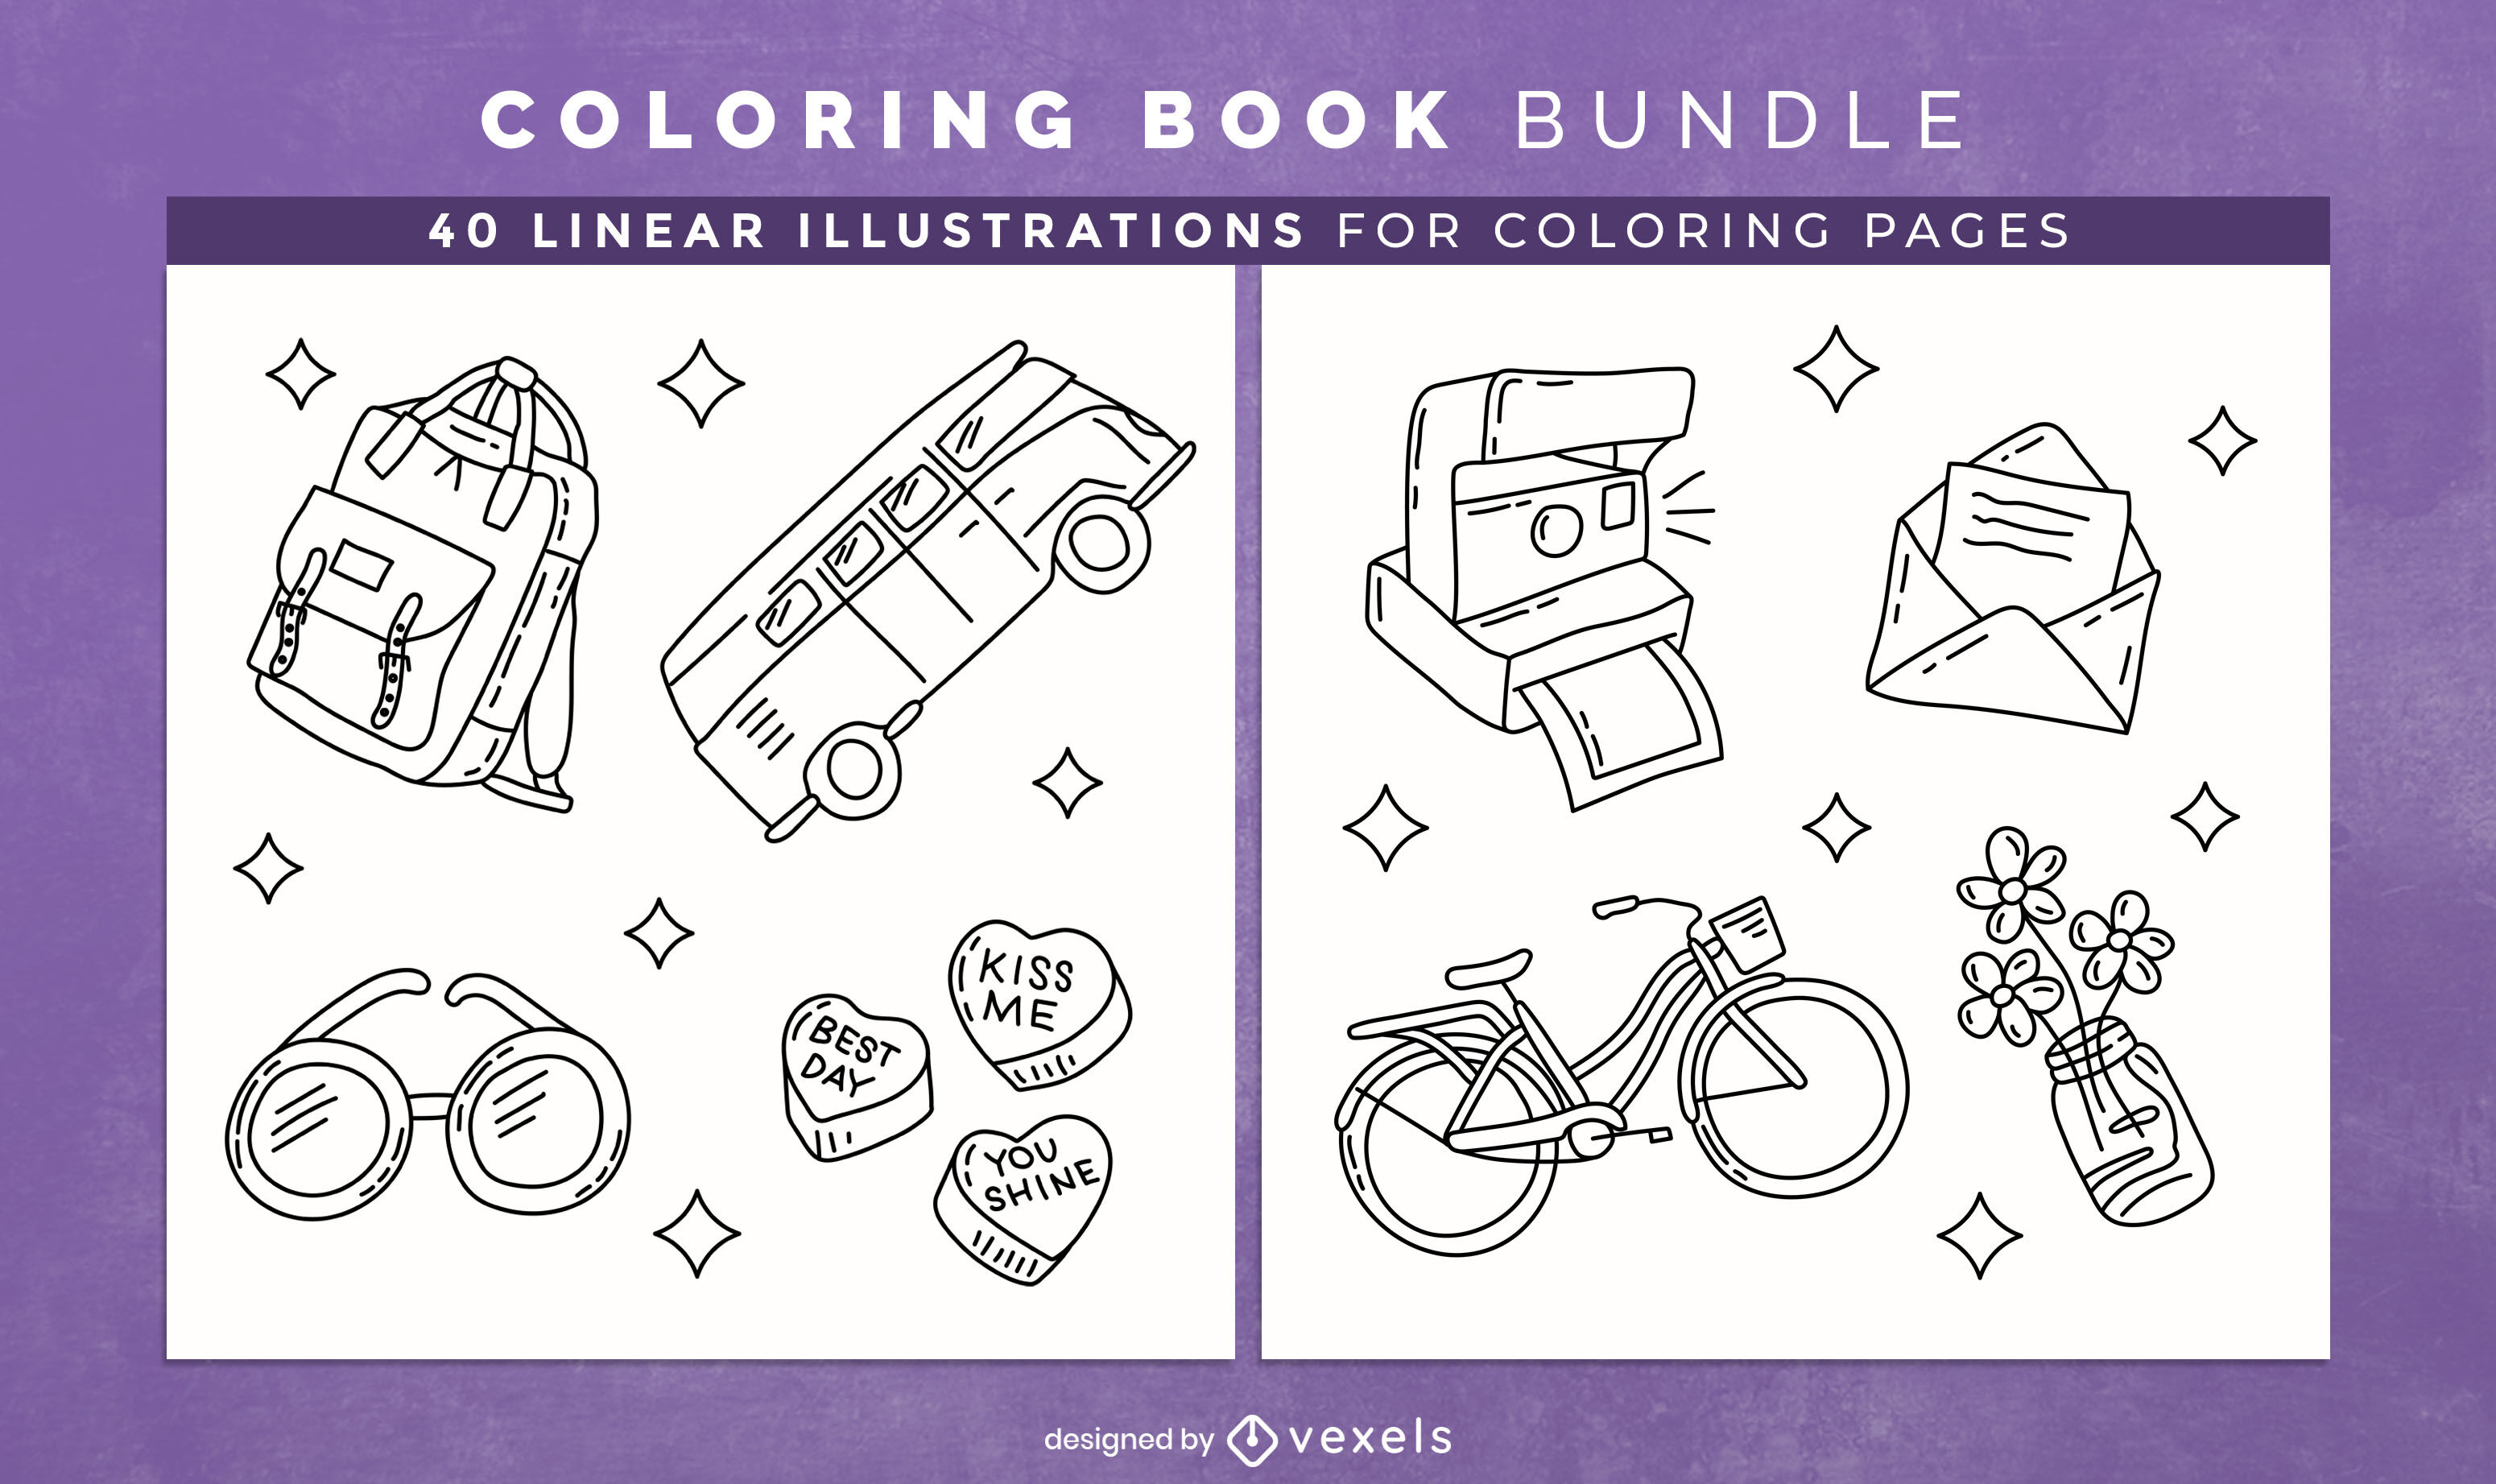 Cool objects coloring book interior design